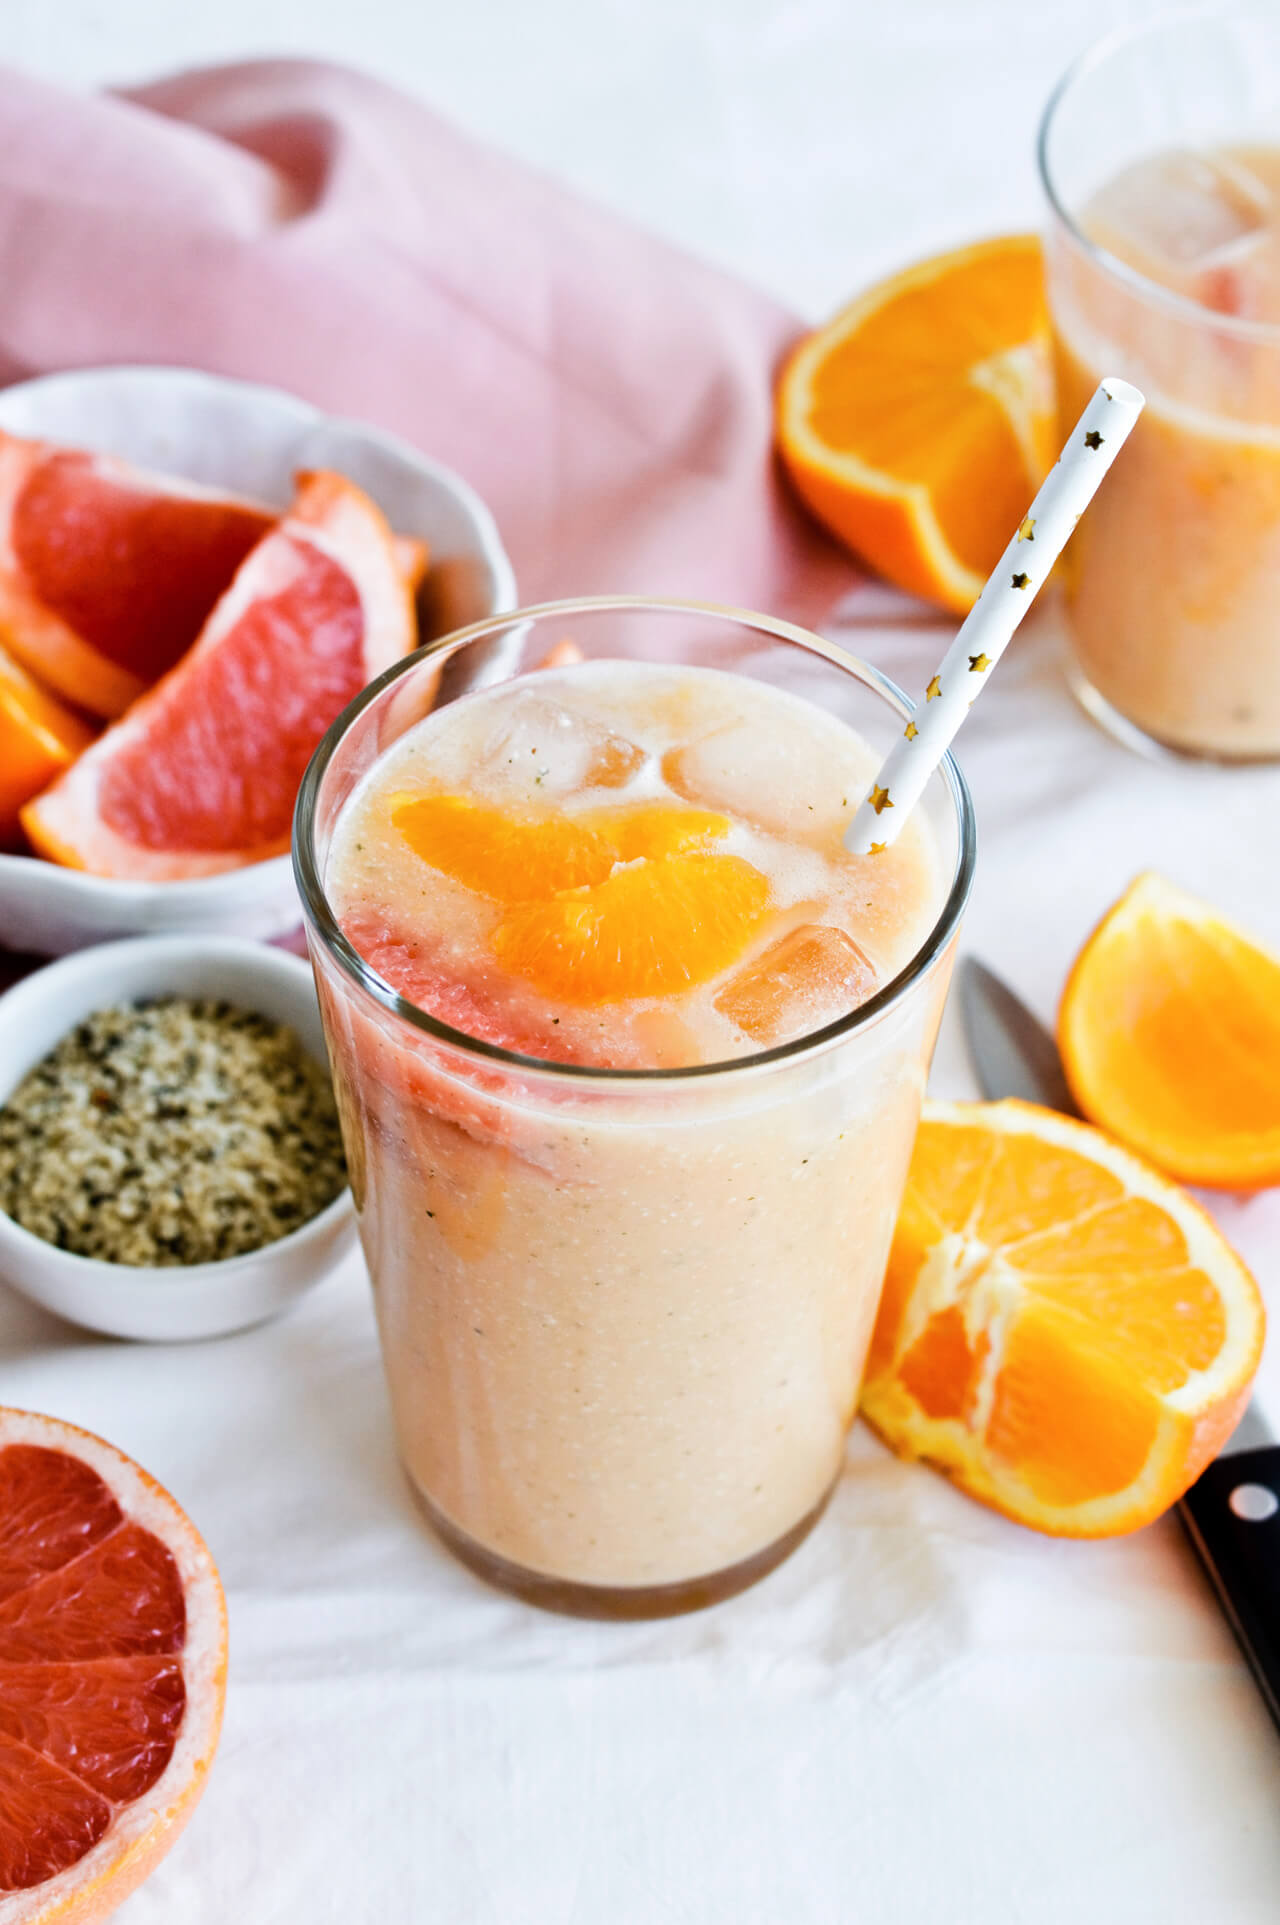 Vitamin C citrus power smoothie is an easy quick vegan smoothie, perfect for breakfast or snack.